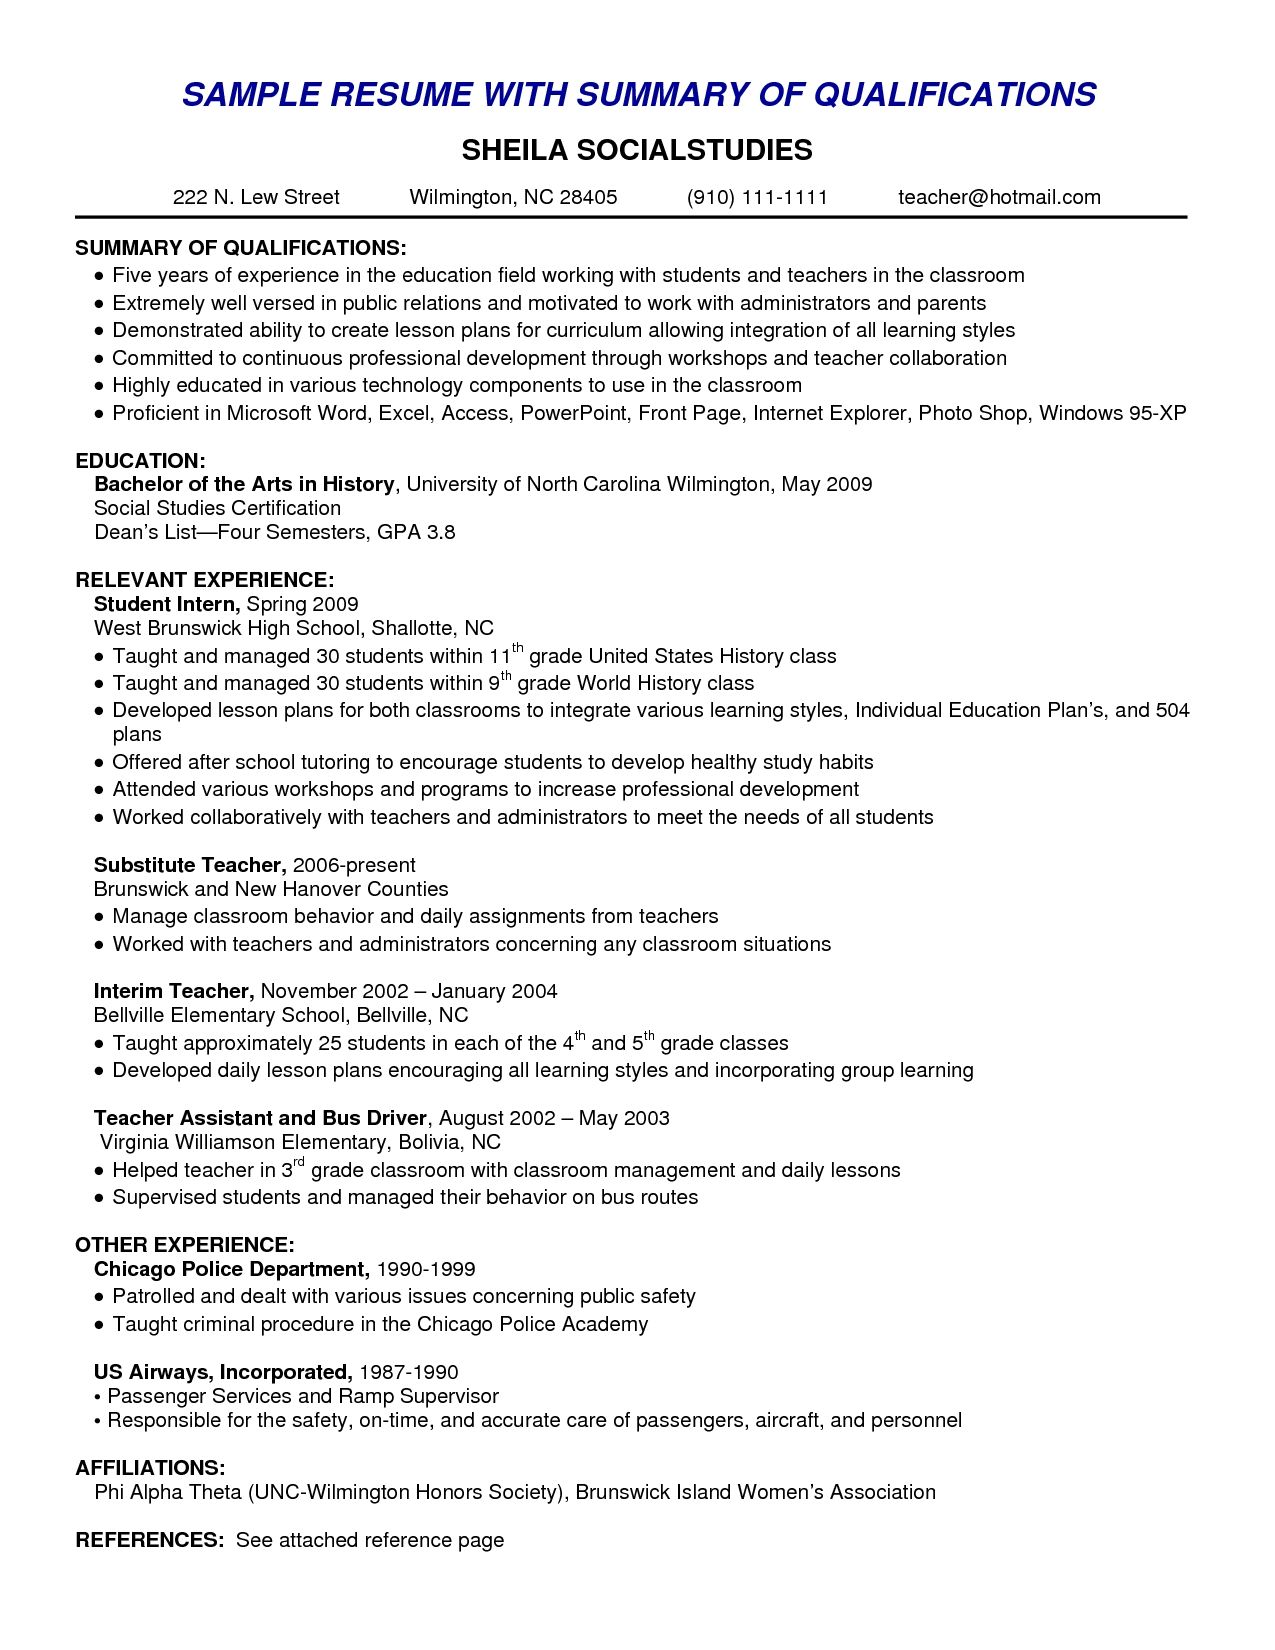 Skill Resume Template Resume Skills Summary Examples Example Of Skills Summary For